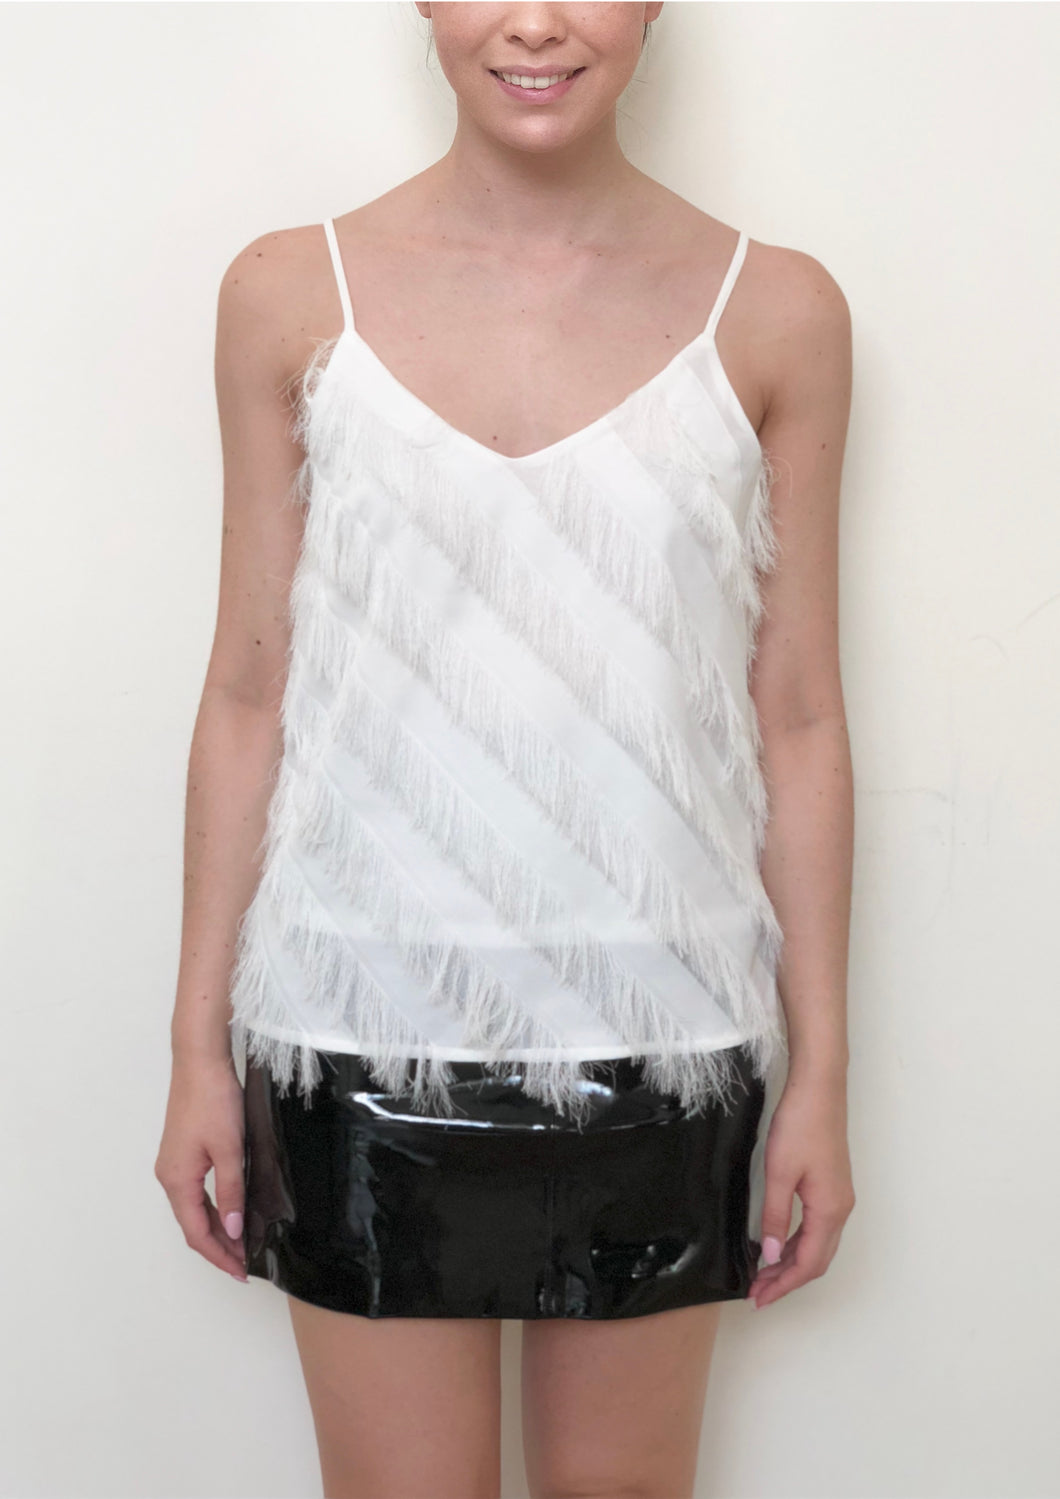 SP006SS Fringed Cami (Pack)